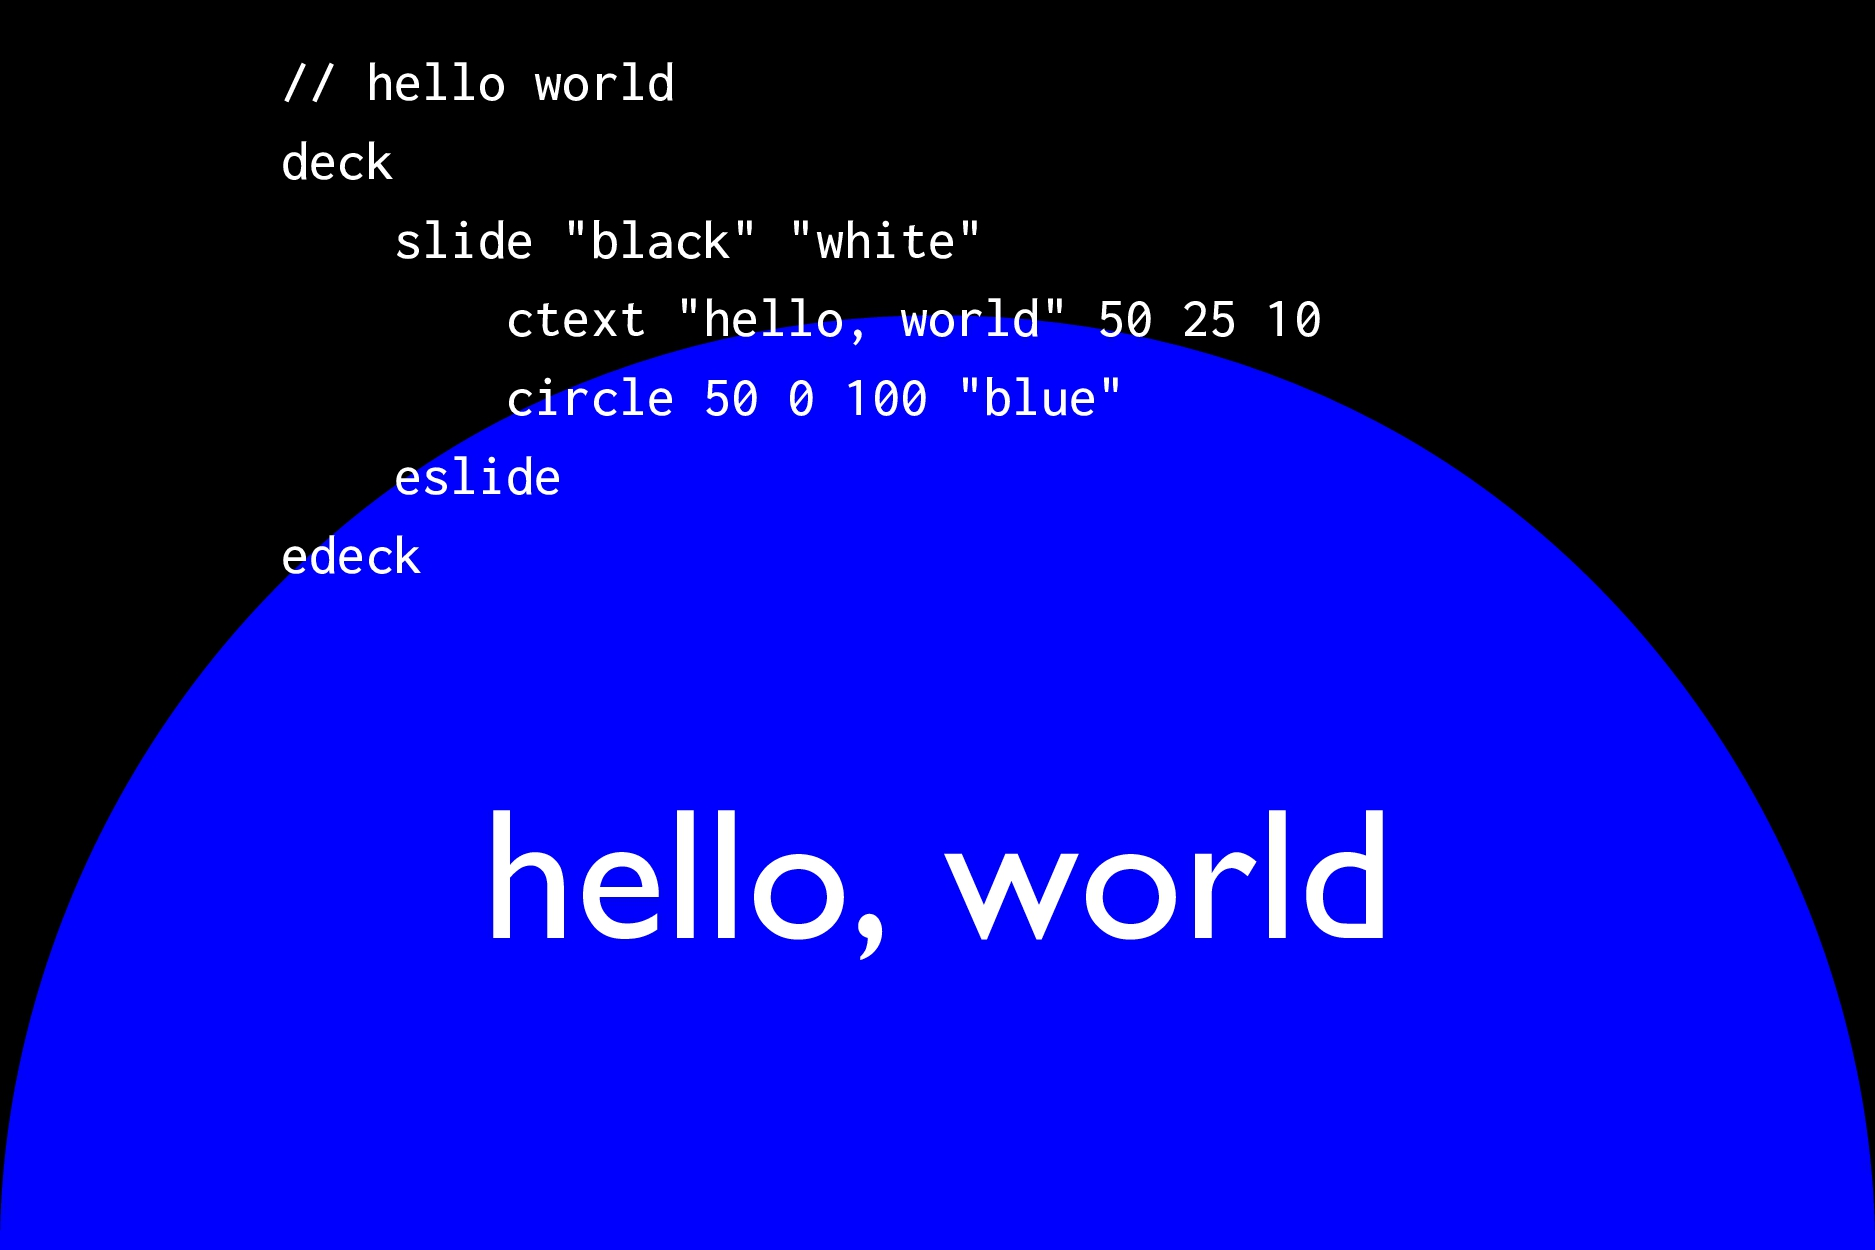 "hello, world // hello world deck slide ""black"" ..."